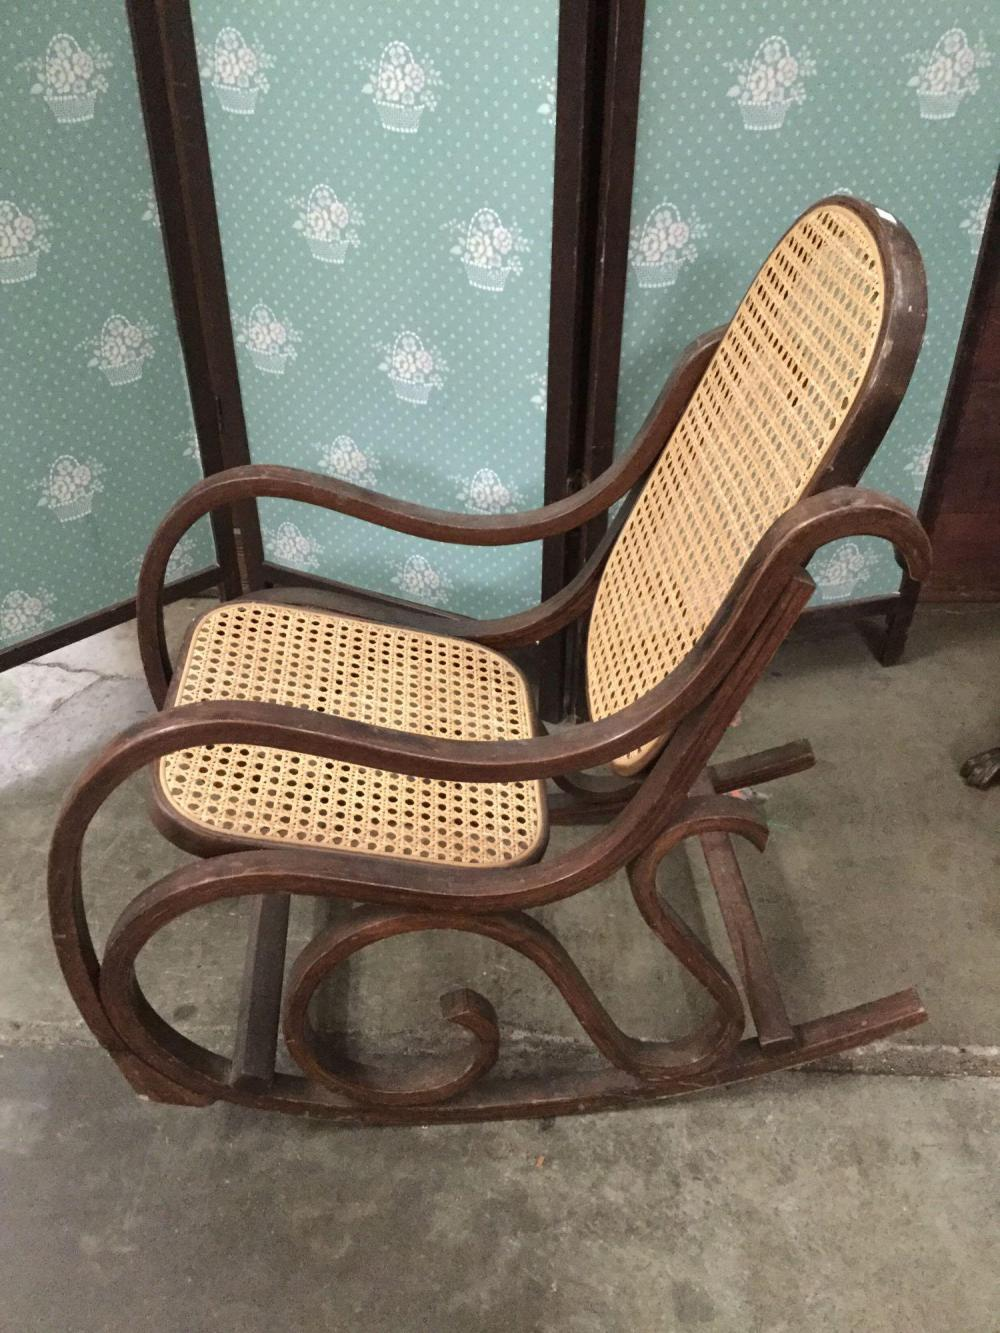 Awe Inspiring Vintage Child Size Wood Rocking Chair With Cane Wicker Seat Lamtechconsult Wood Chair Design Ideas Lamtechconsultcom